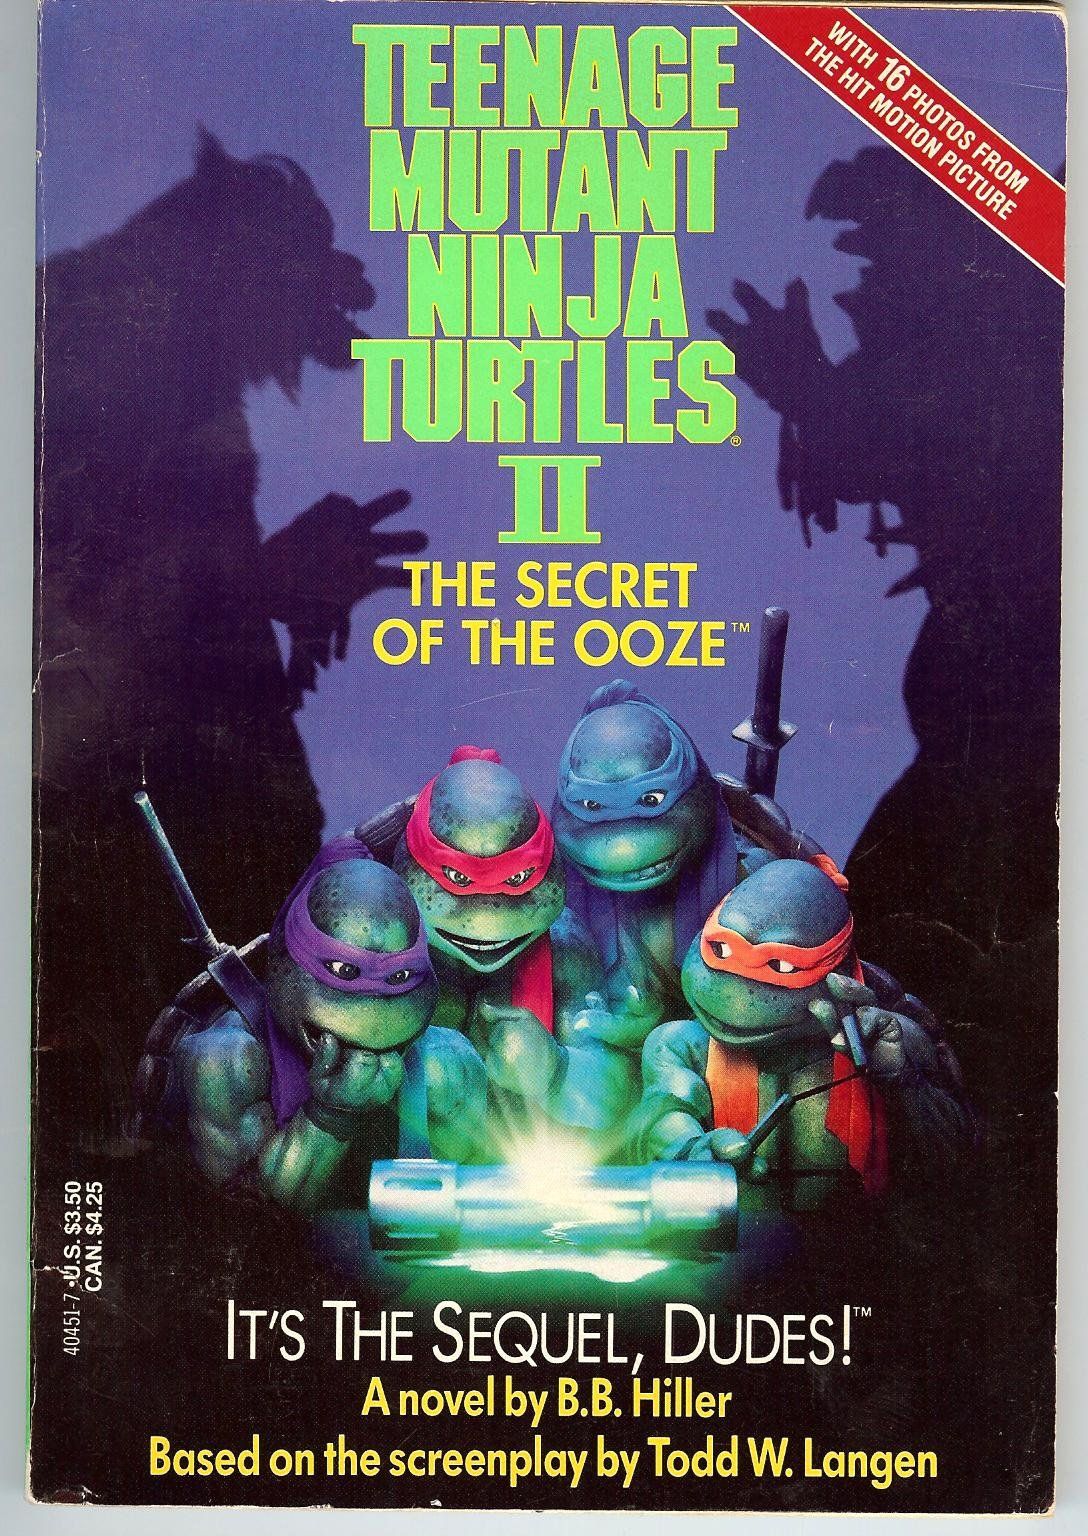 Teenage Mutant Ninja Turtles 2 The Secret Of The Ooze Hiller B B 9780440404514 Amazon Com Books